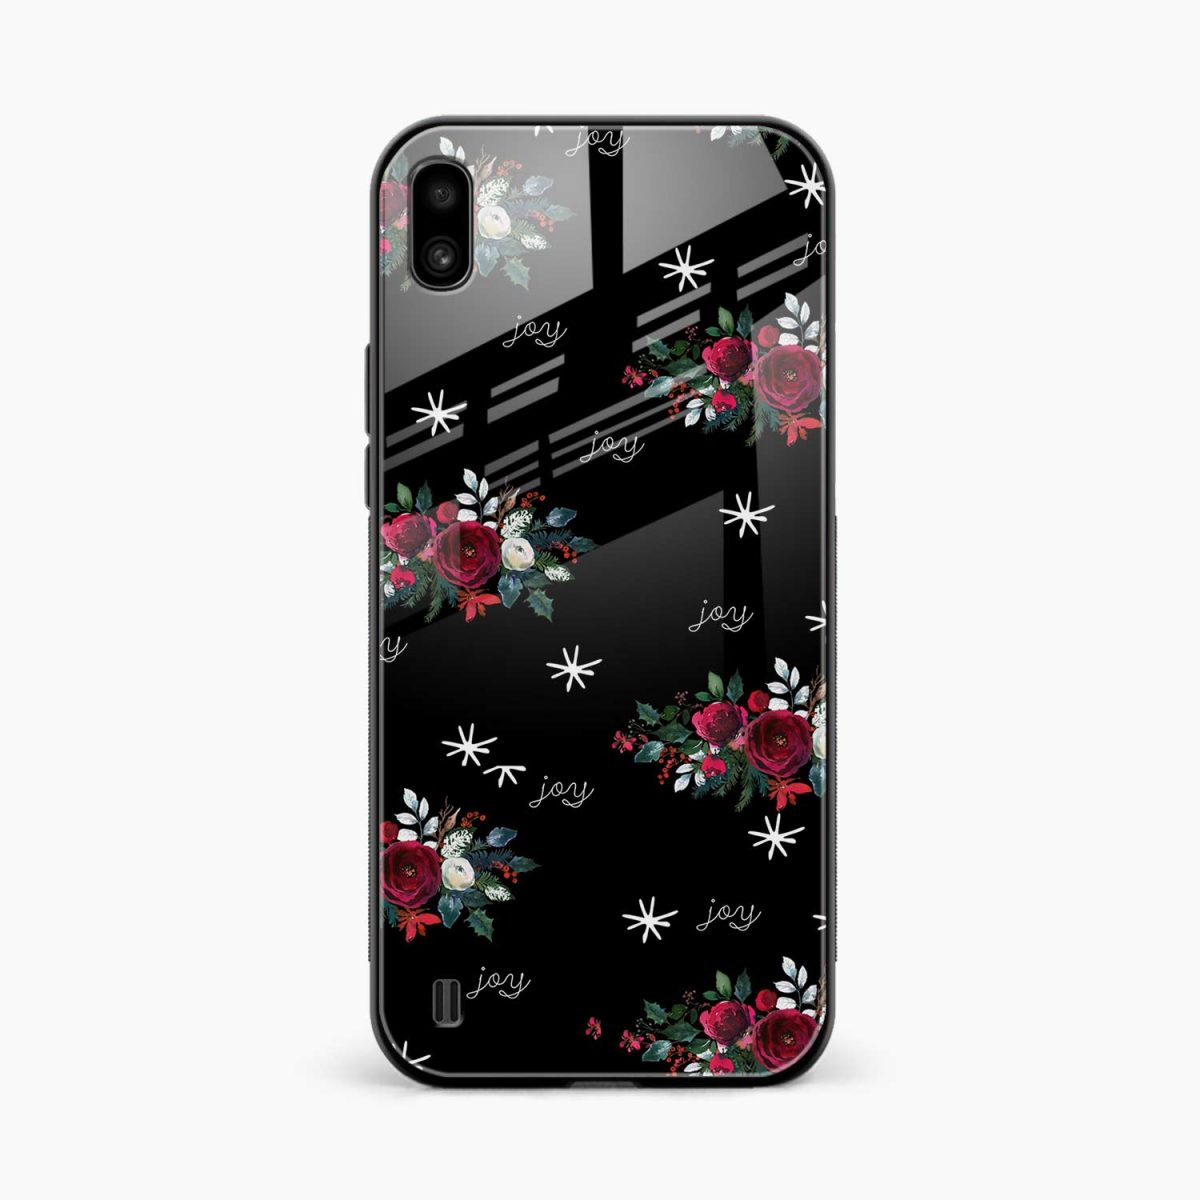 joy floral black colored front view samsung galaxy a10 back cover